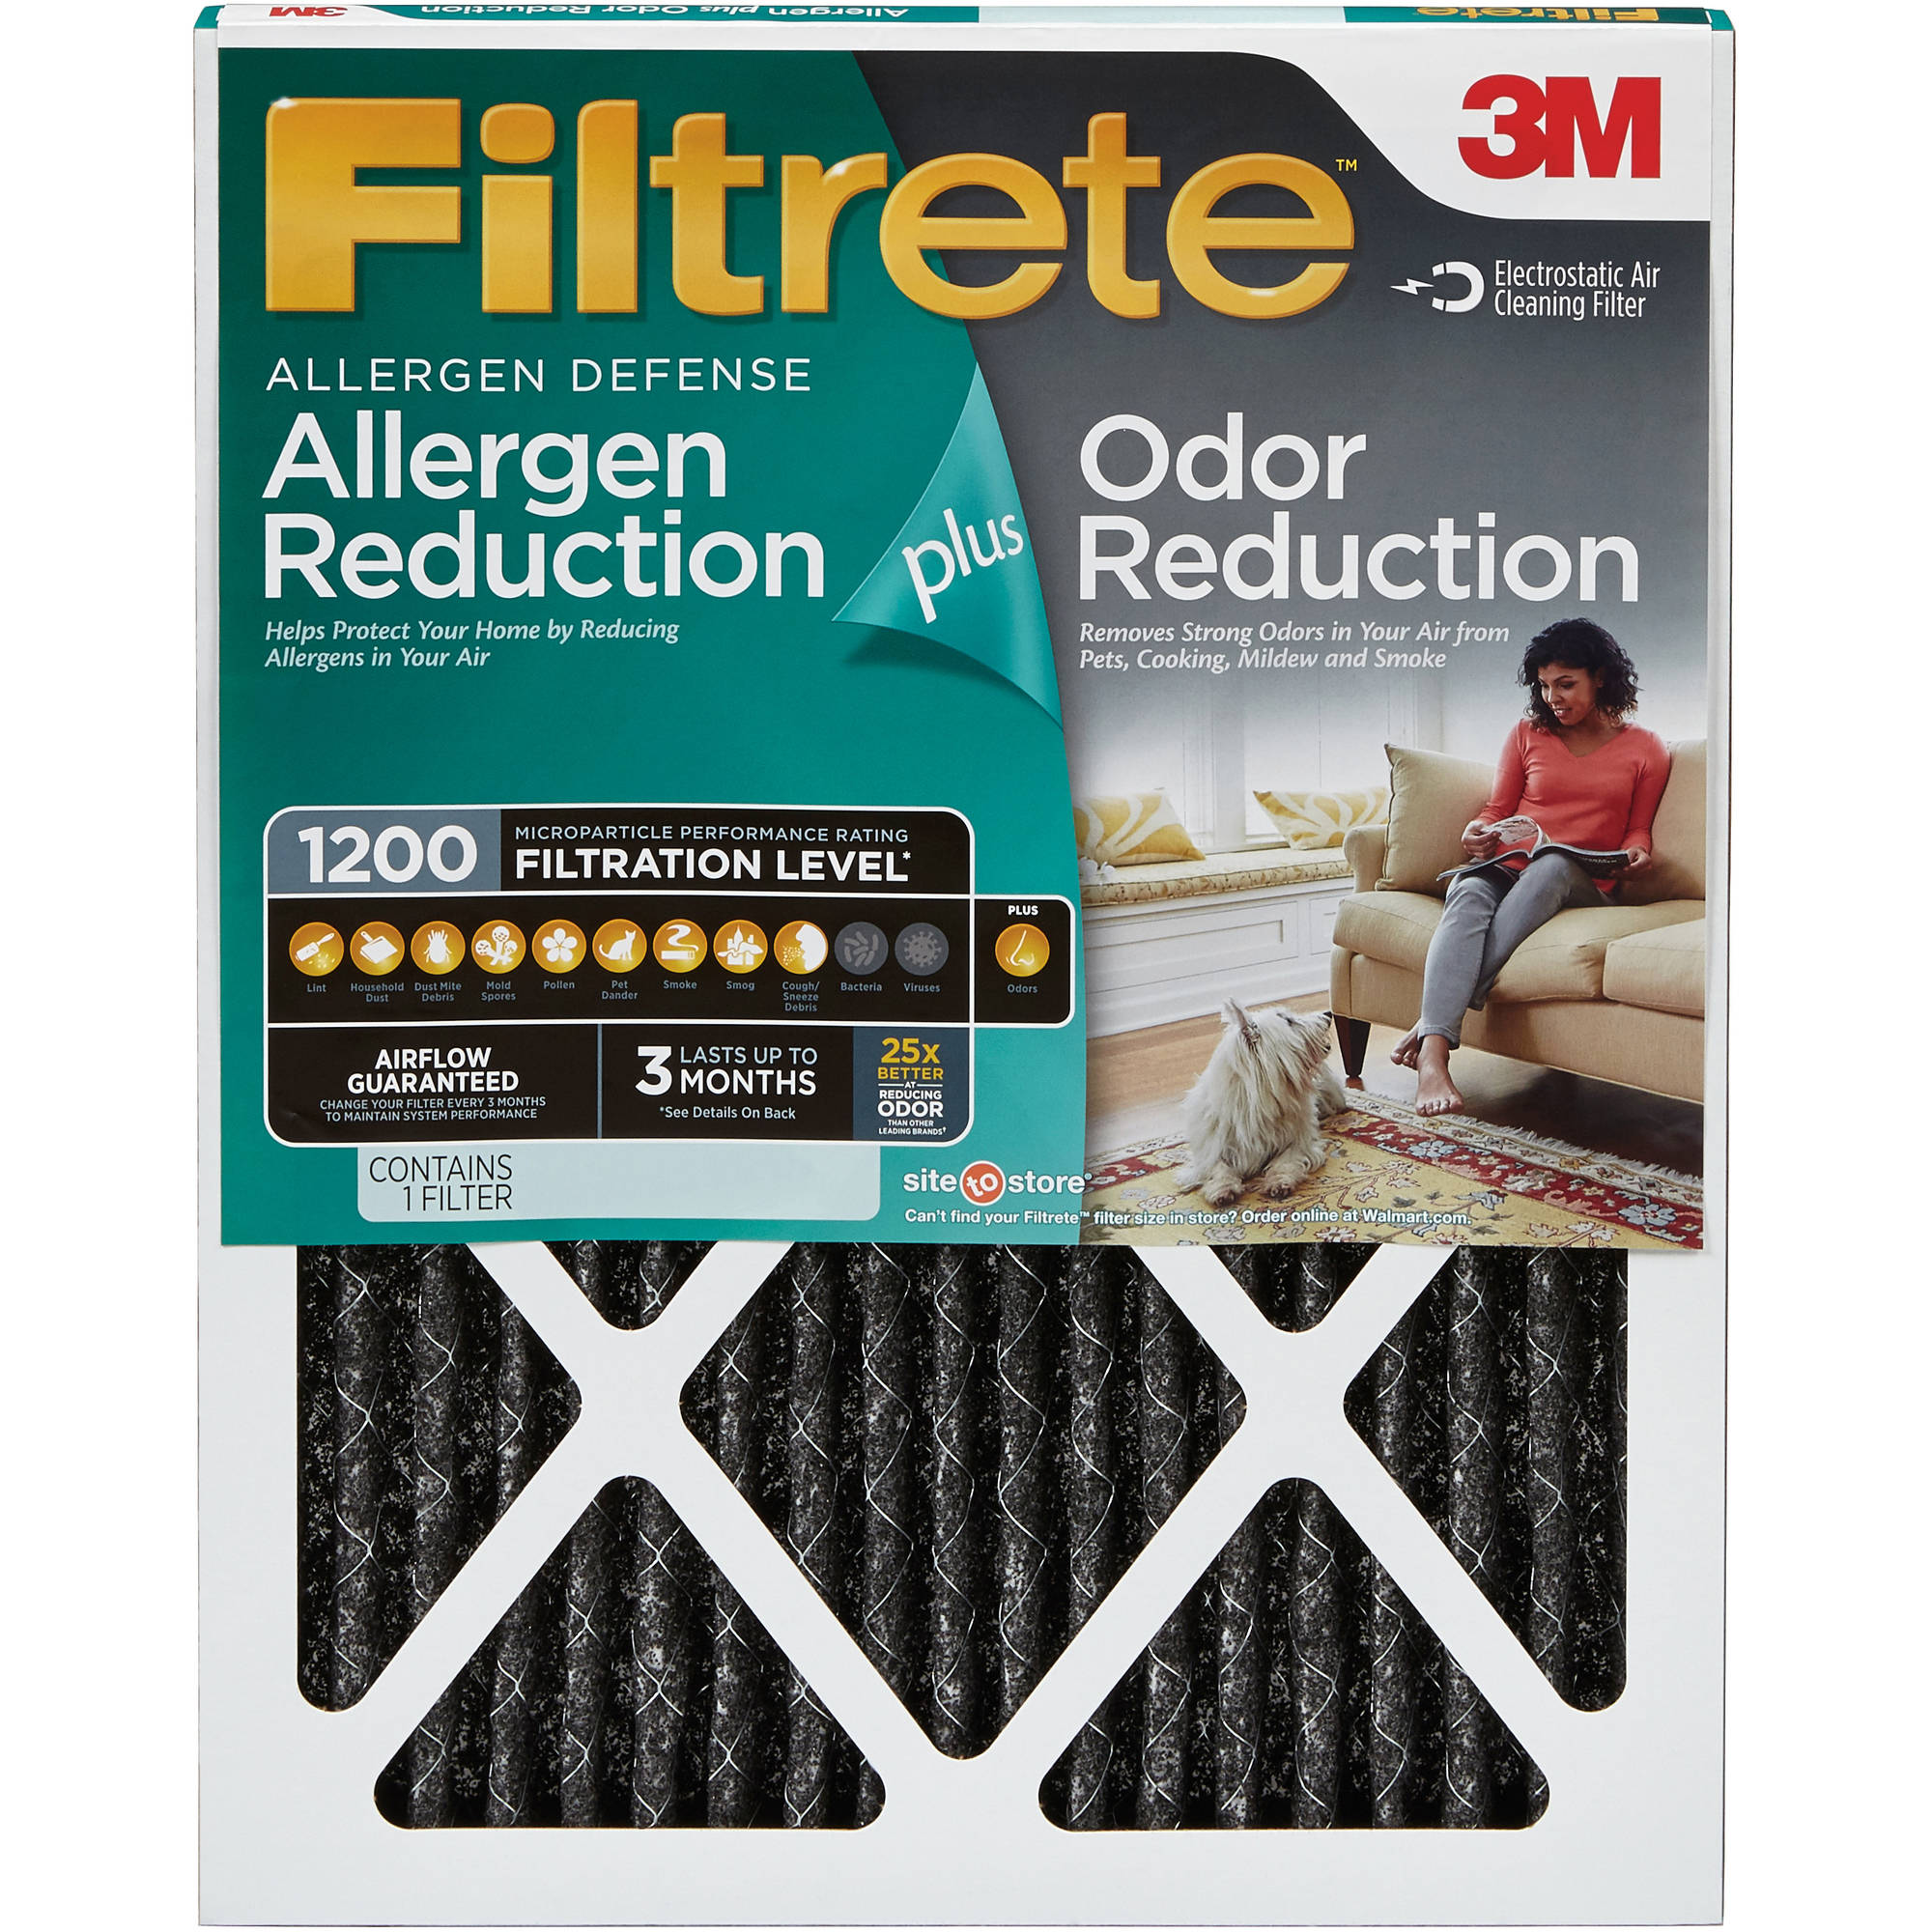 Filtrete Allergen Plus Odor Reduction HVAC Furnace Air Filter, 1200 MPR, 24 x 30 x 1, 1 Filter